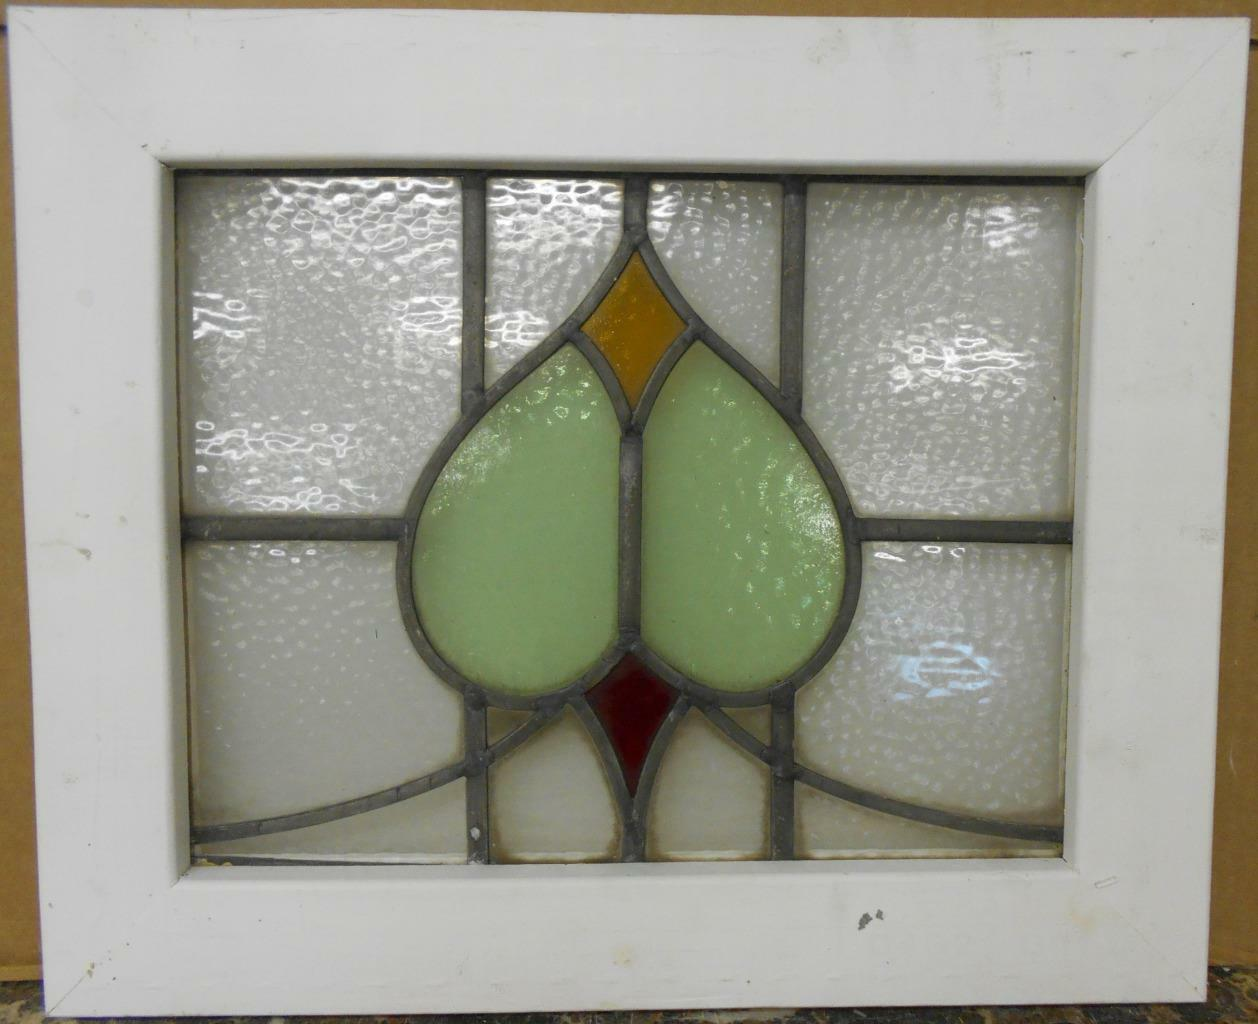 "OLD ENGLISH LEADED STAINED GLASS WINDOW Abstract Sweep Design 21"" x 17.25"""